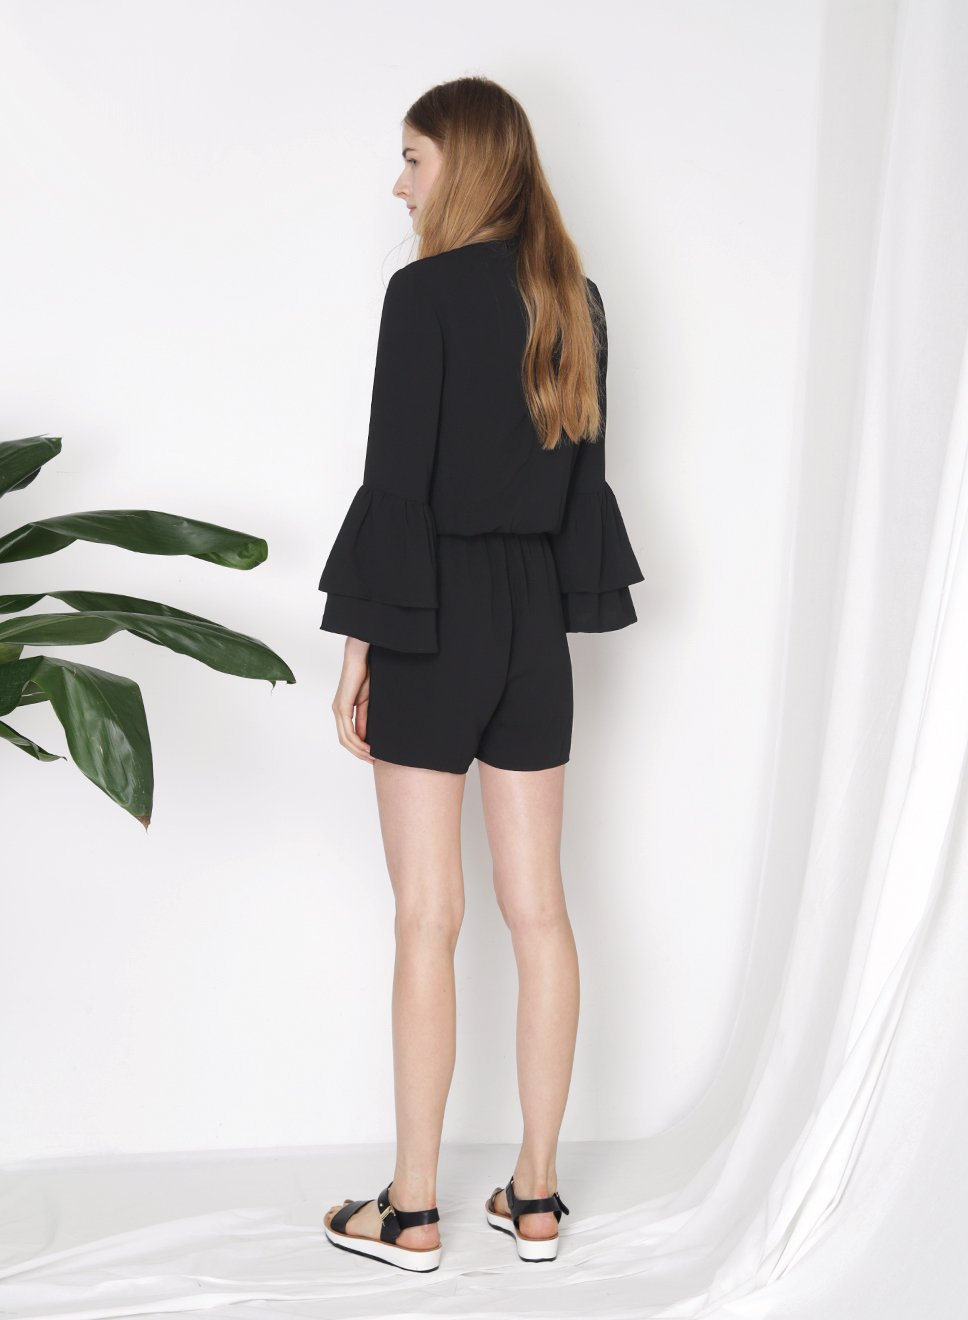 STELLAR Double Tier Ruffle Sleeves Romper (Black) at $ 24.00 only sold at And Well Dressed Online Fashion Store Singapore